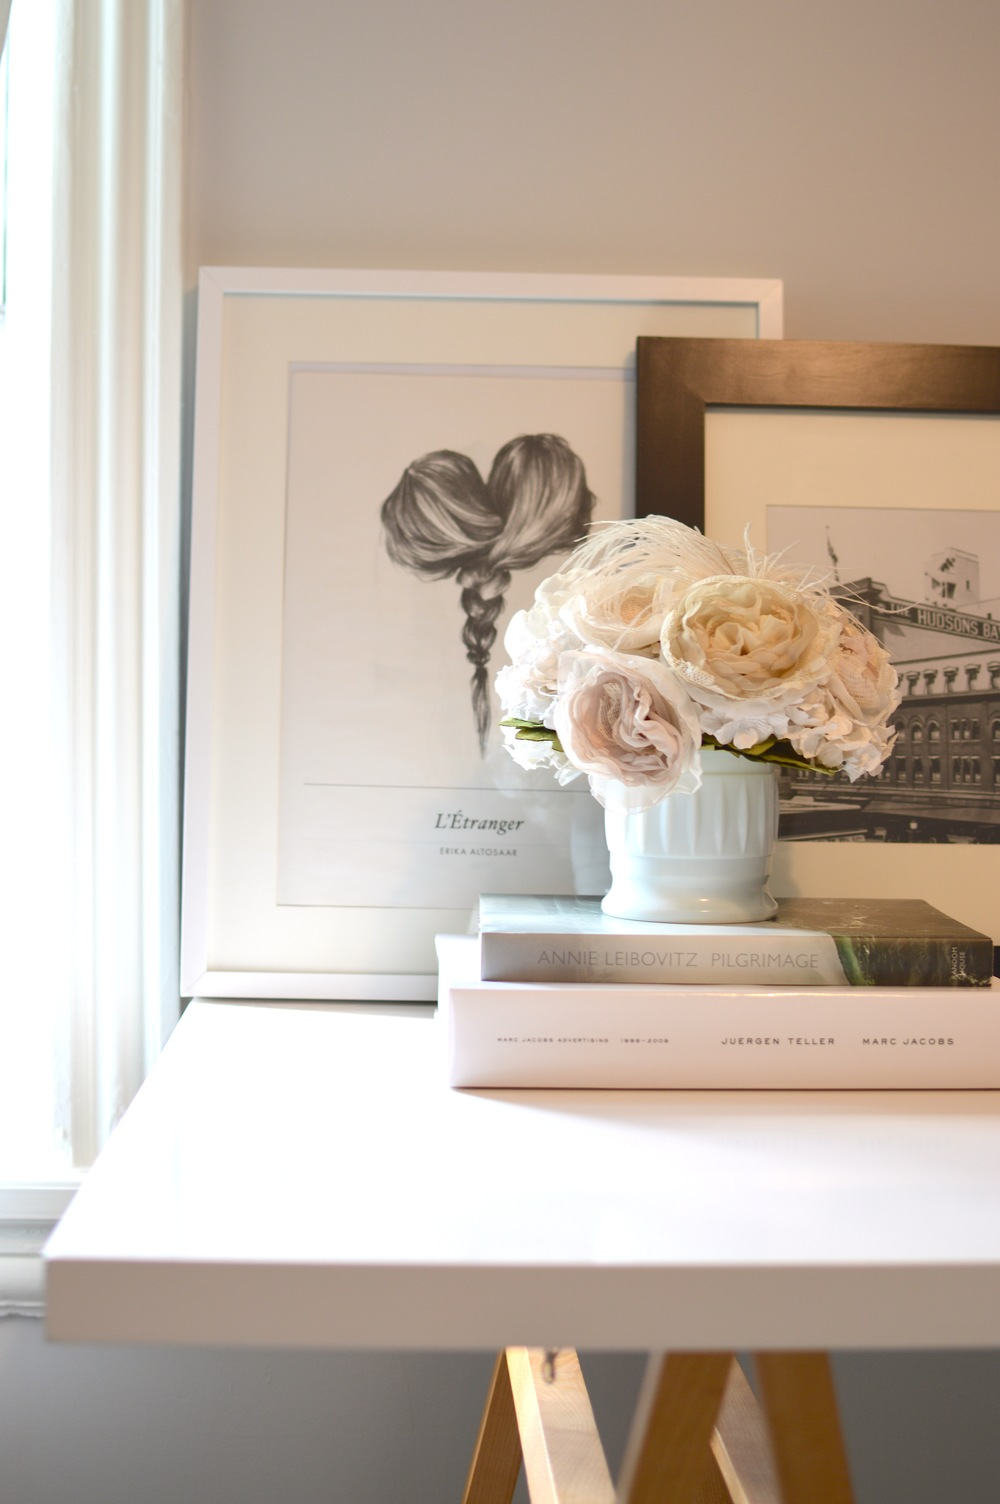 Art by Erika Altosaar, print from Hudson's Bay Company book, flowers by Alternative Blooms, desk from West Elm